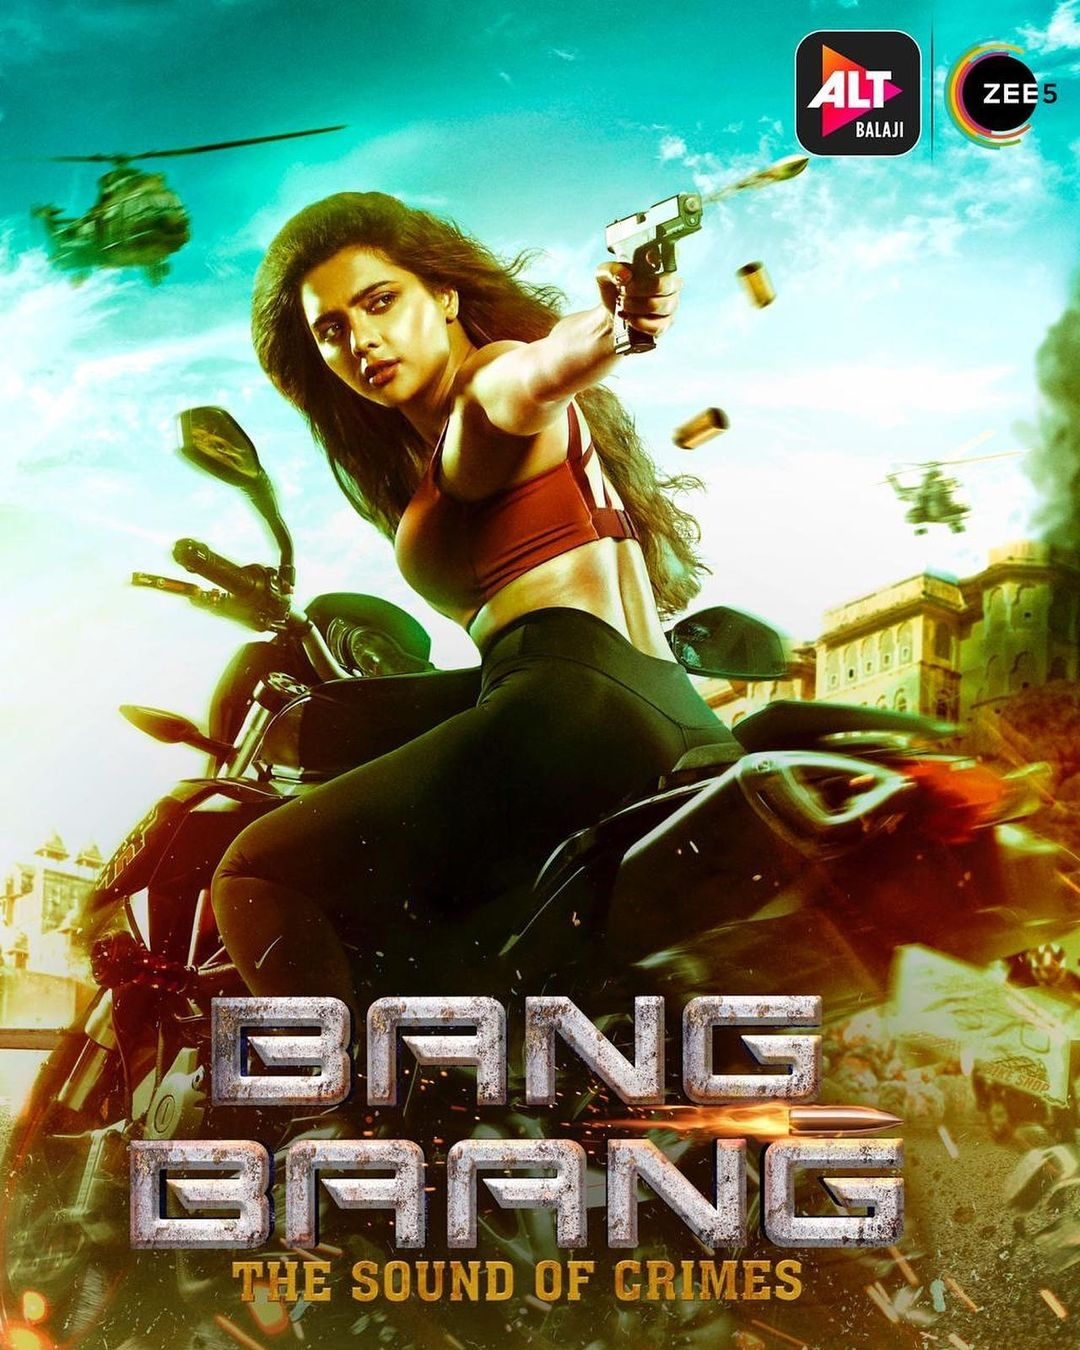 18+ Bang Baang 2021 S01 Hindi ALTBalaji Original Complete Web Series 720p HDRip 1.3GB Download